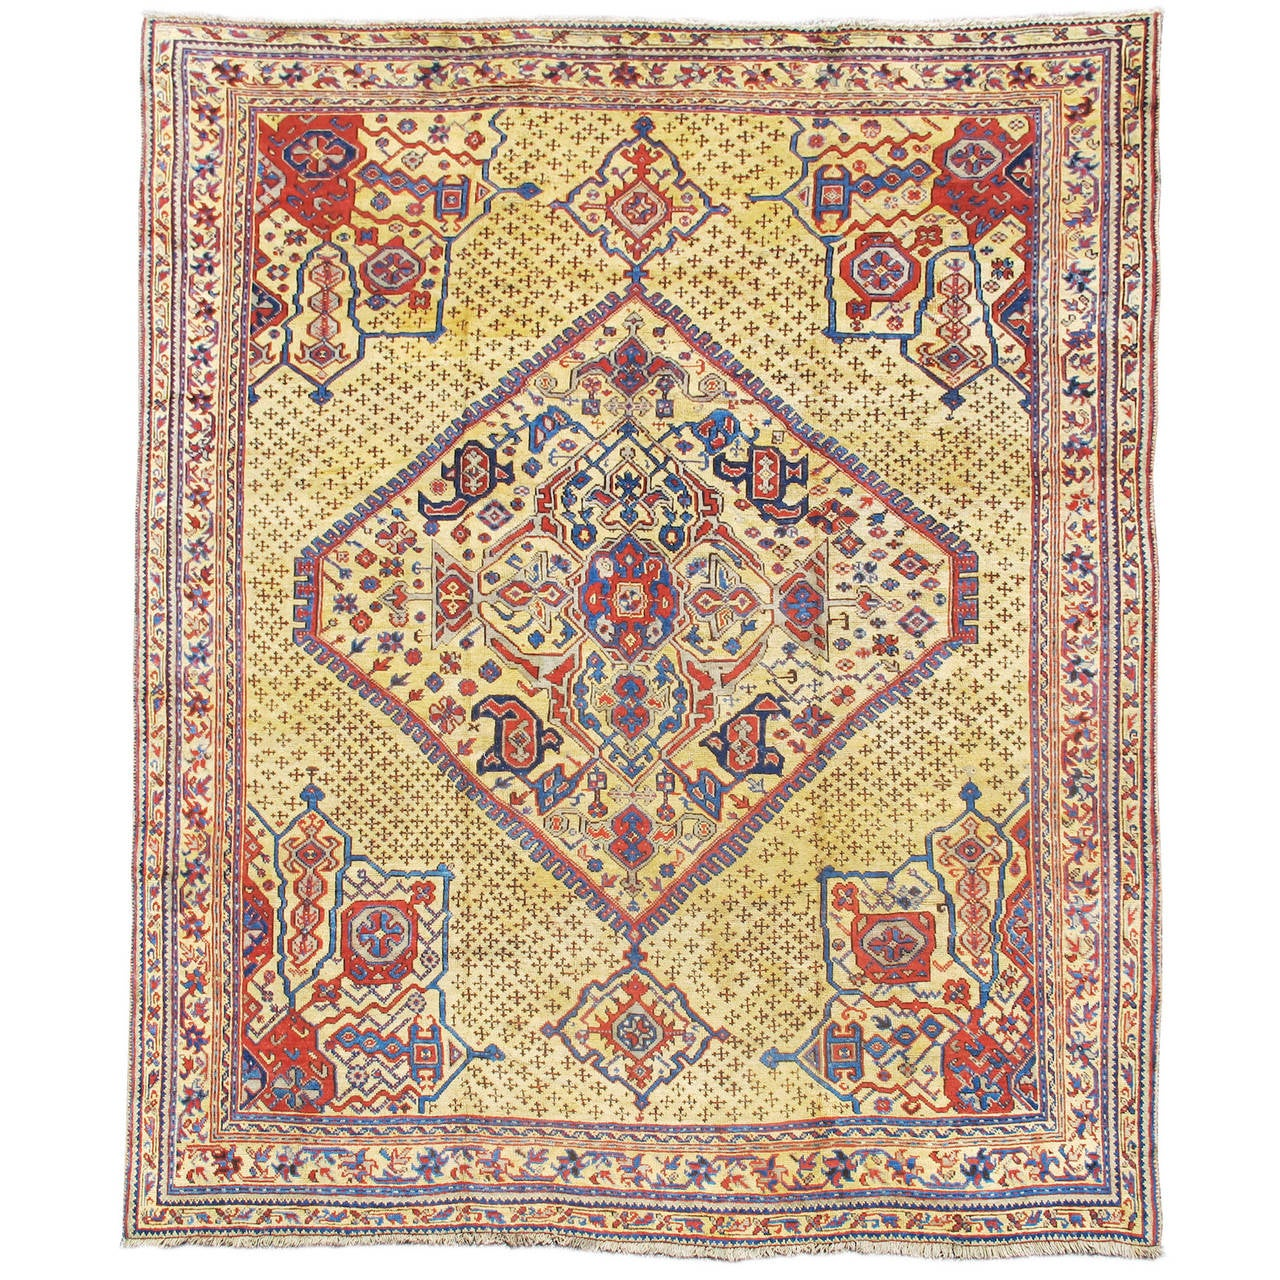 Early 19th Century Madder Red Turkish Oushak Carpet with Golden Ivory Field